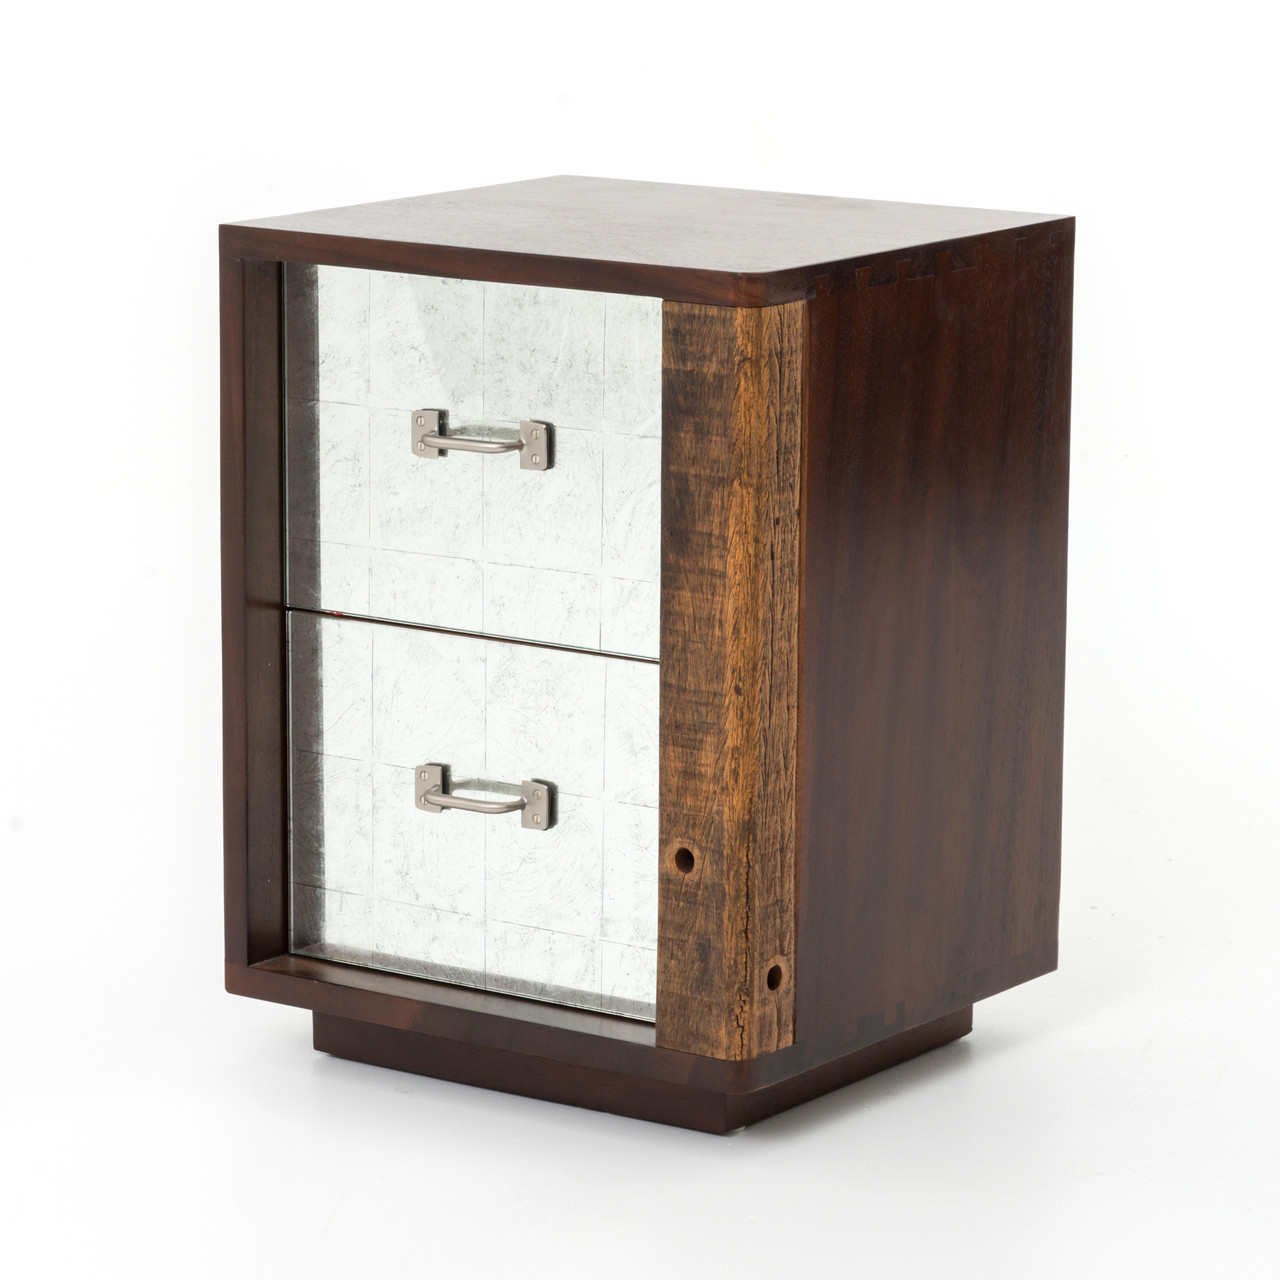 Bina reclaimed wood mirrored nightstand right